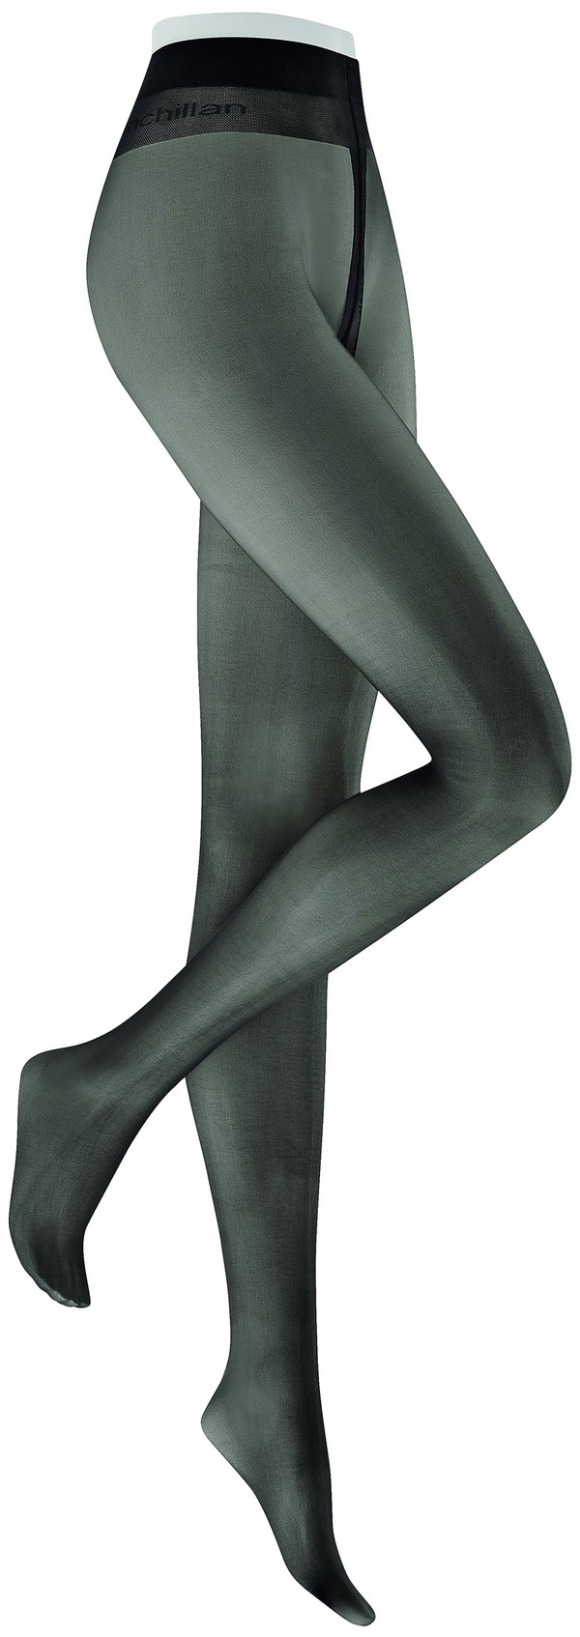 kunert-chinchillan-20-tights-04